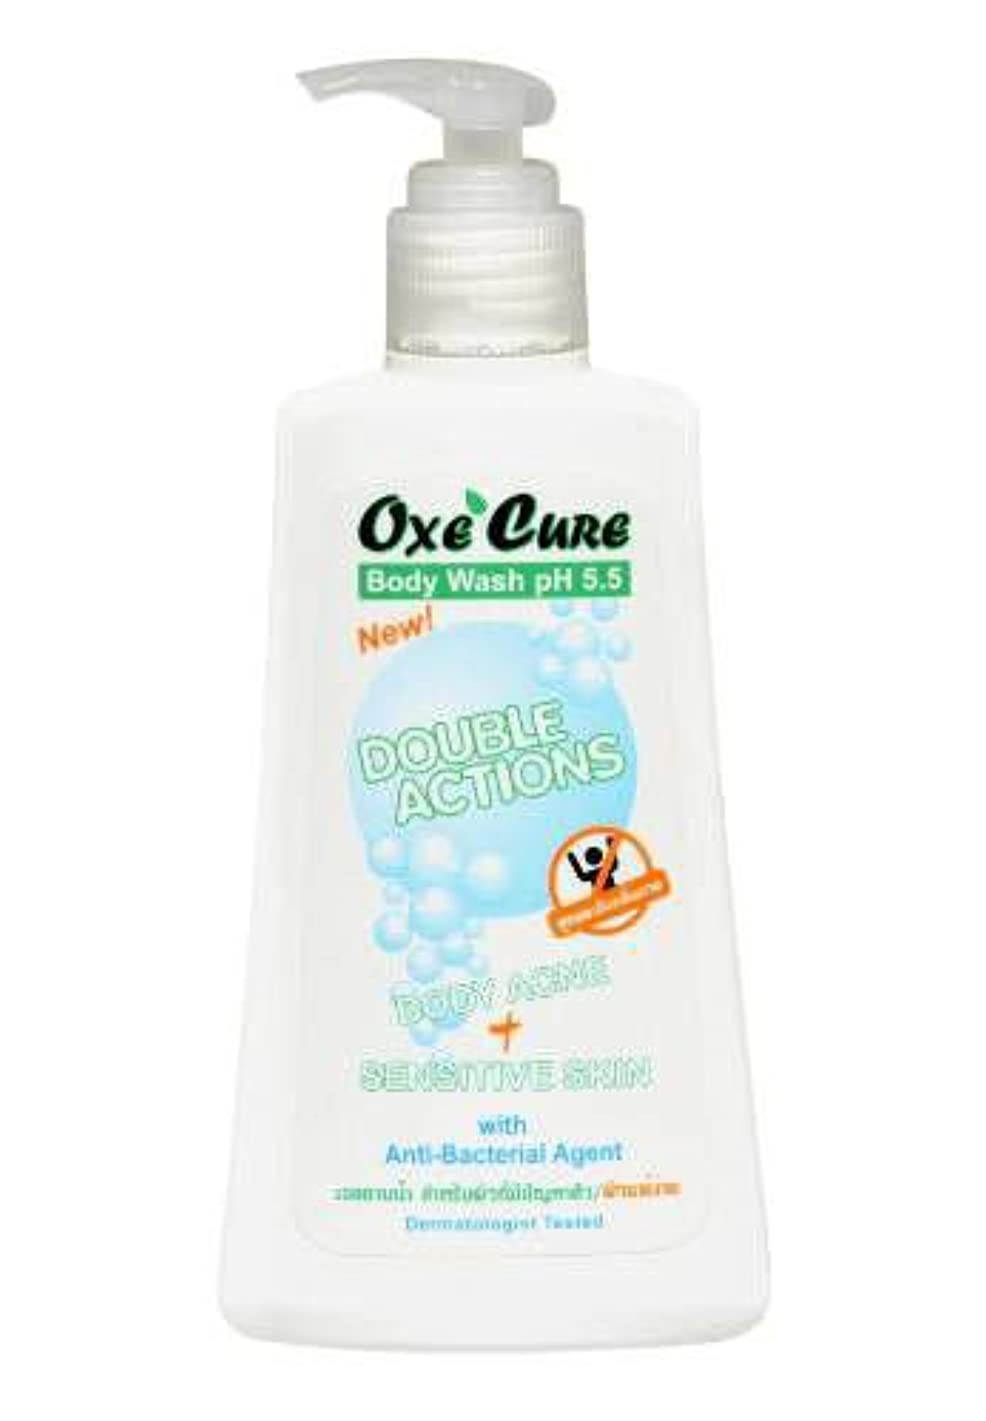 Oxe'cure Body Wash Anti-acne & Blemishes Control for Back Chest Neck Arms 150 Ml Best Product From Thaialnd